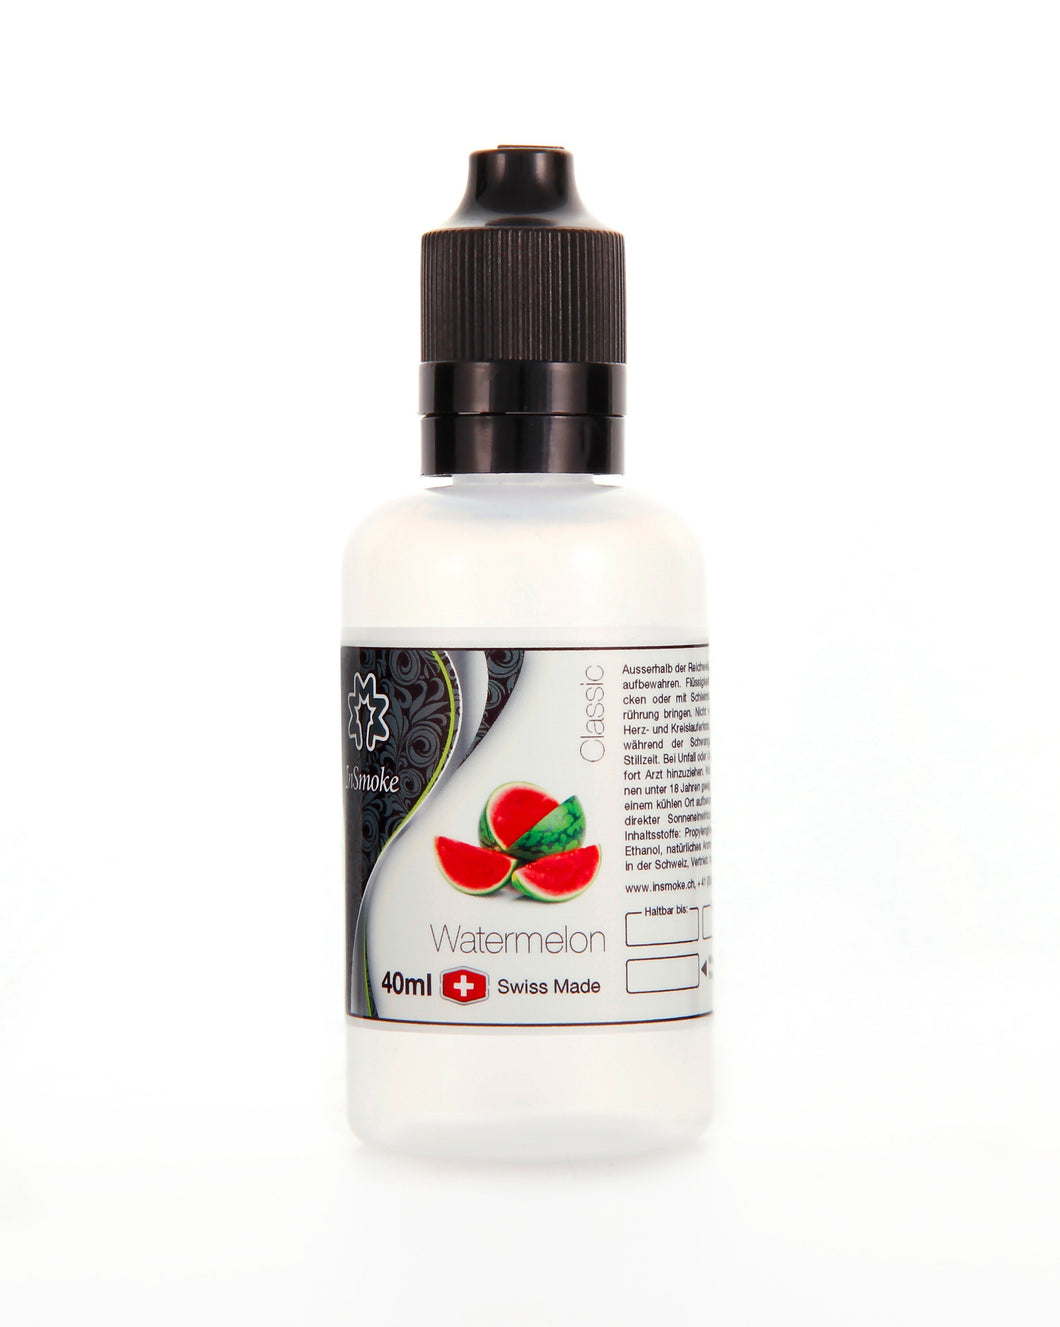 InSmoke Liquid 40ml Wassermelone 0mg Swiss Made - CBD Discounter